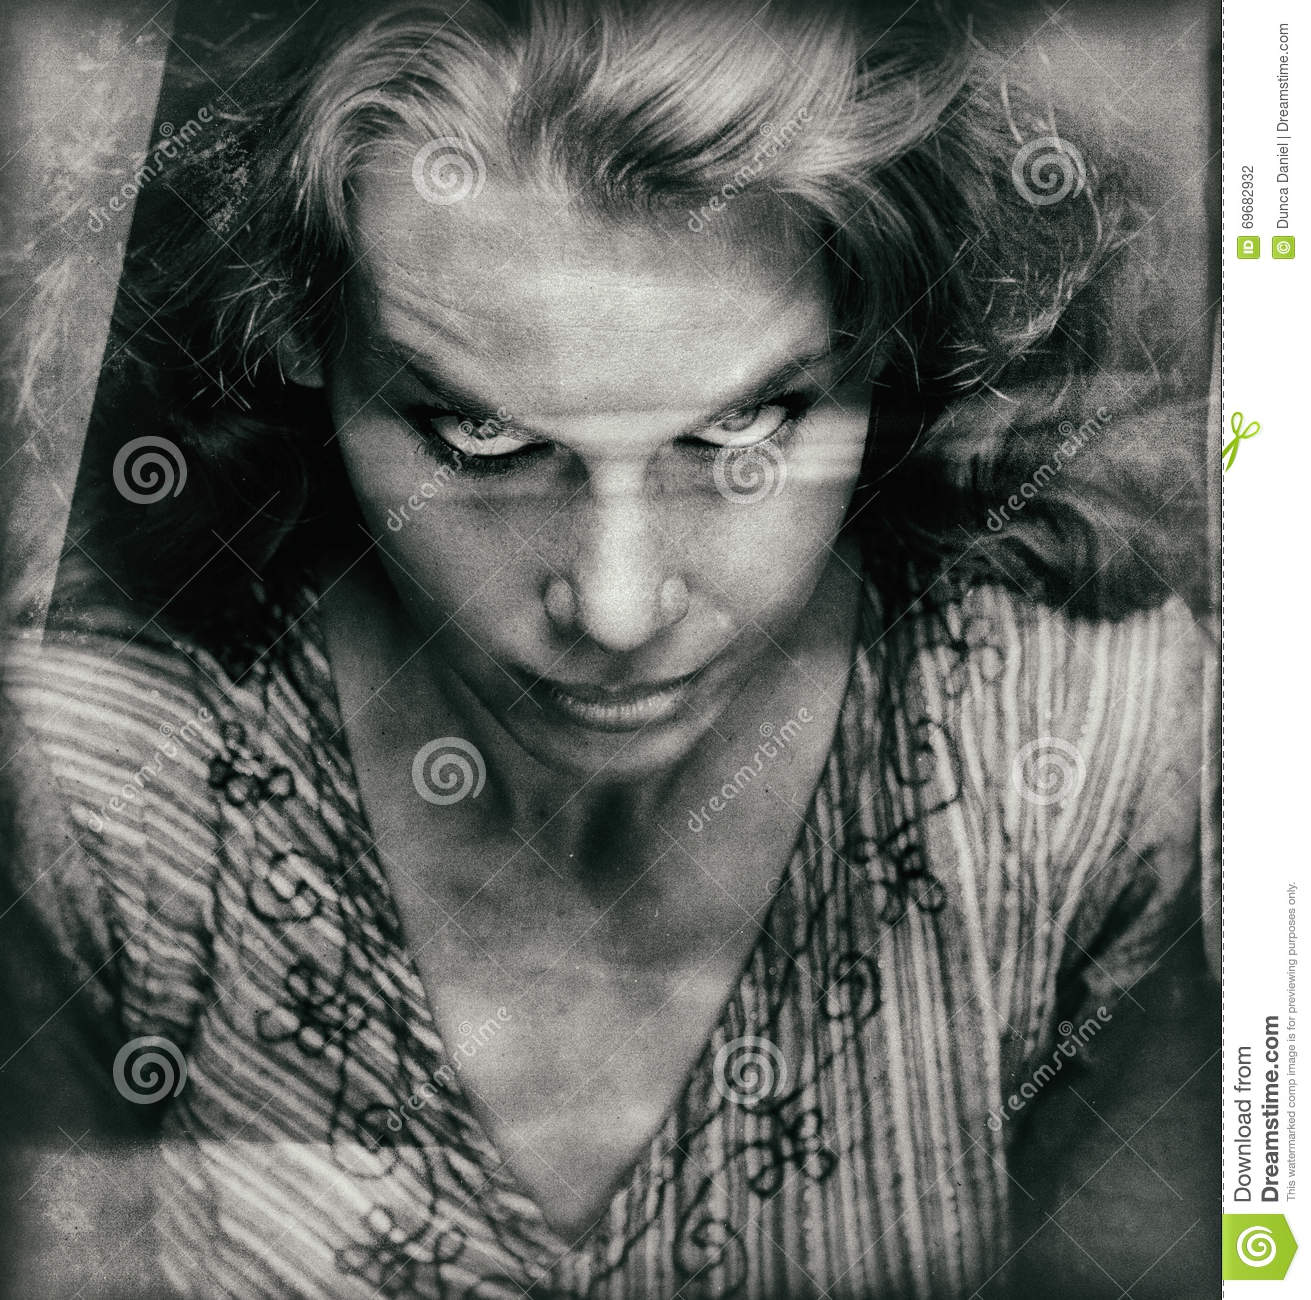 Vintage portrait of scary woman with evil face